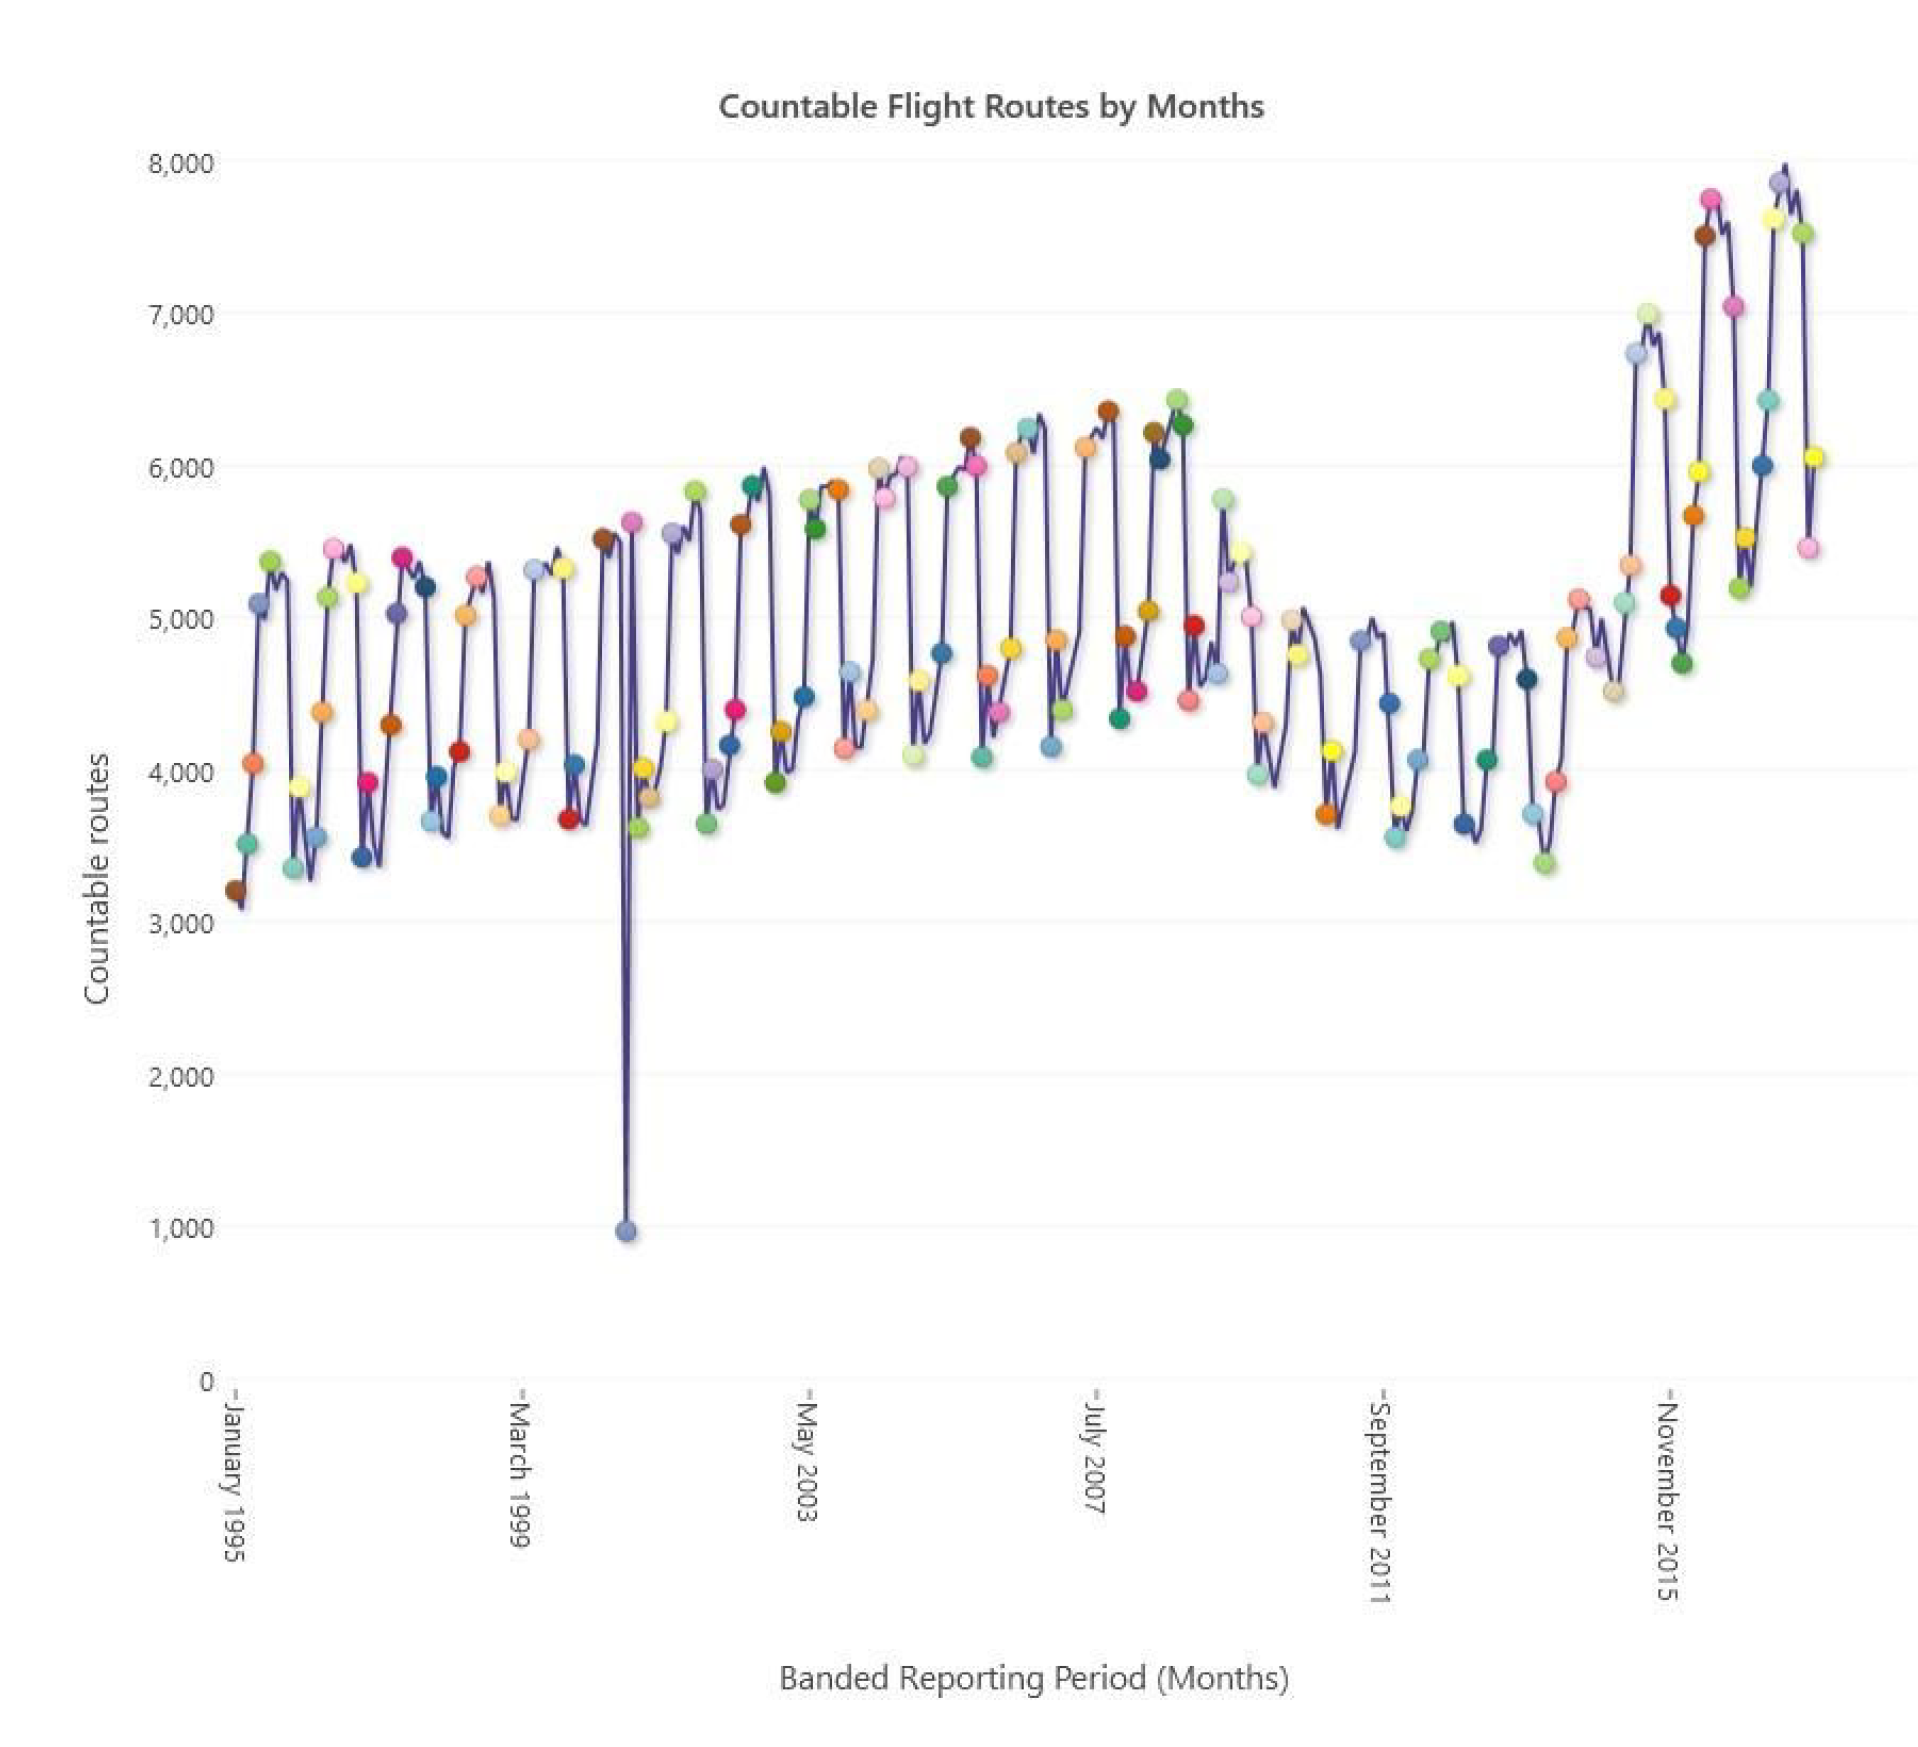 Countable flight routes by month